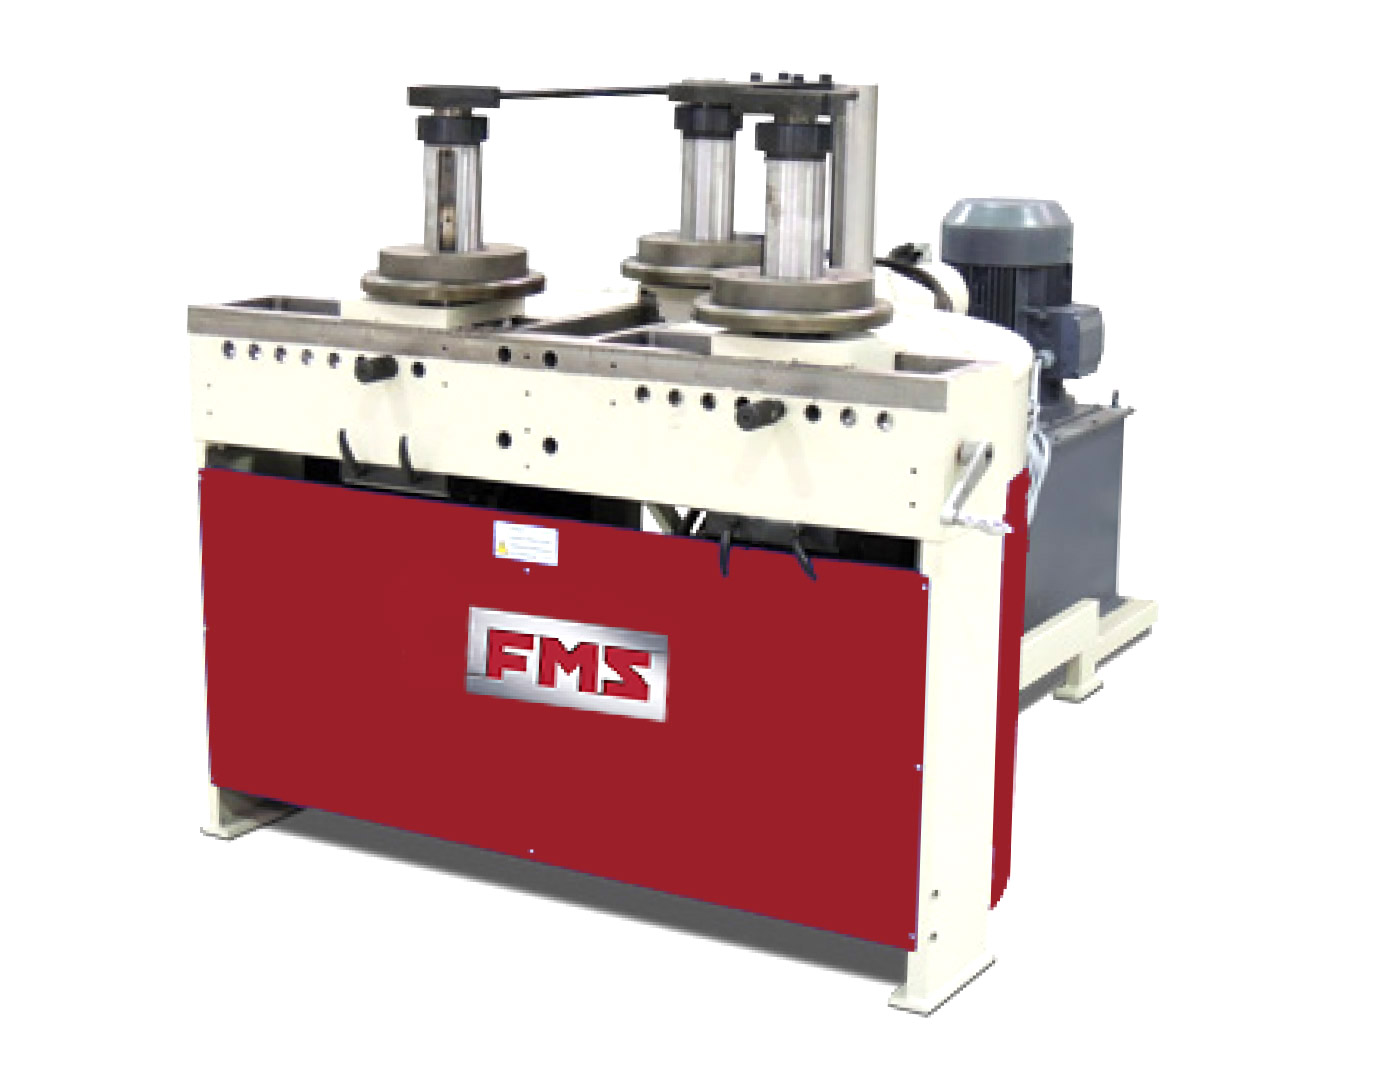 FMS 105 HYDRAULIC PROFILE BENDING MACHINE